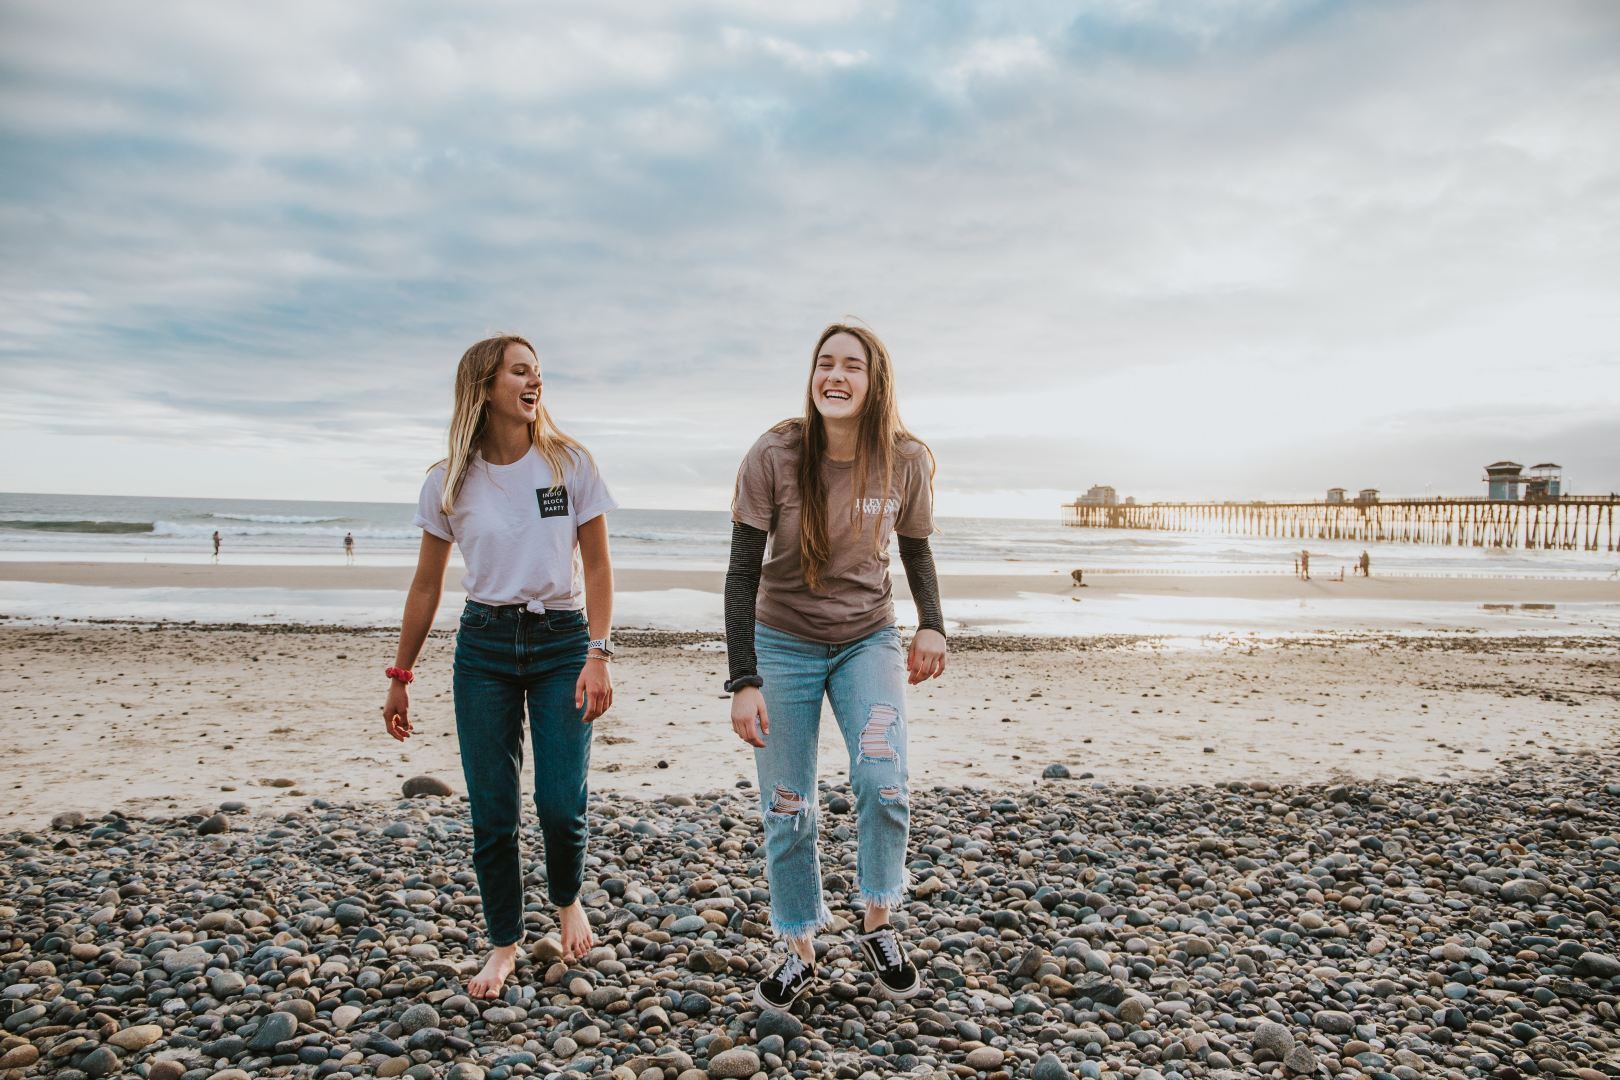 two girls beach California cali summer friend sea ocean coast